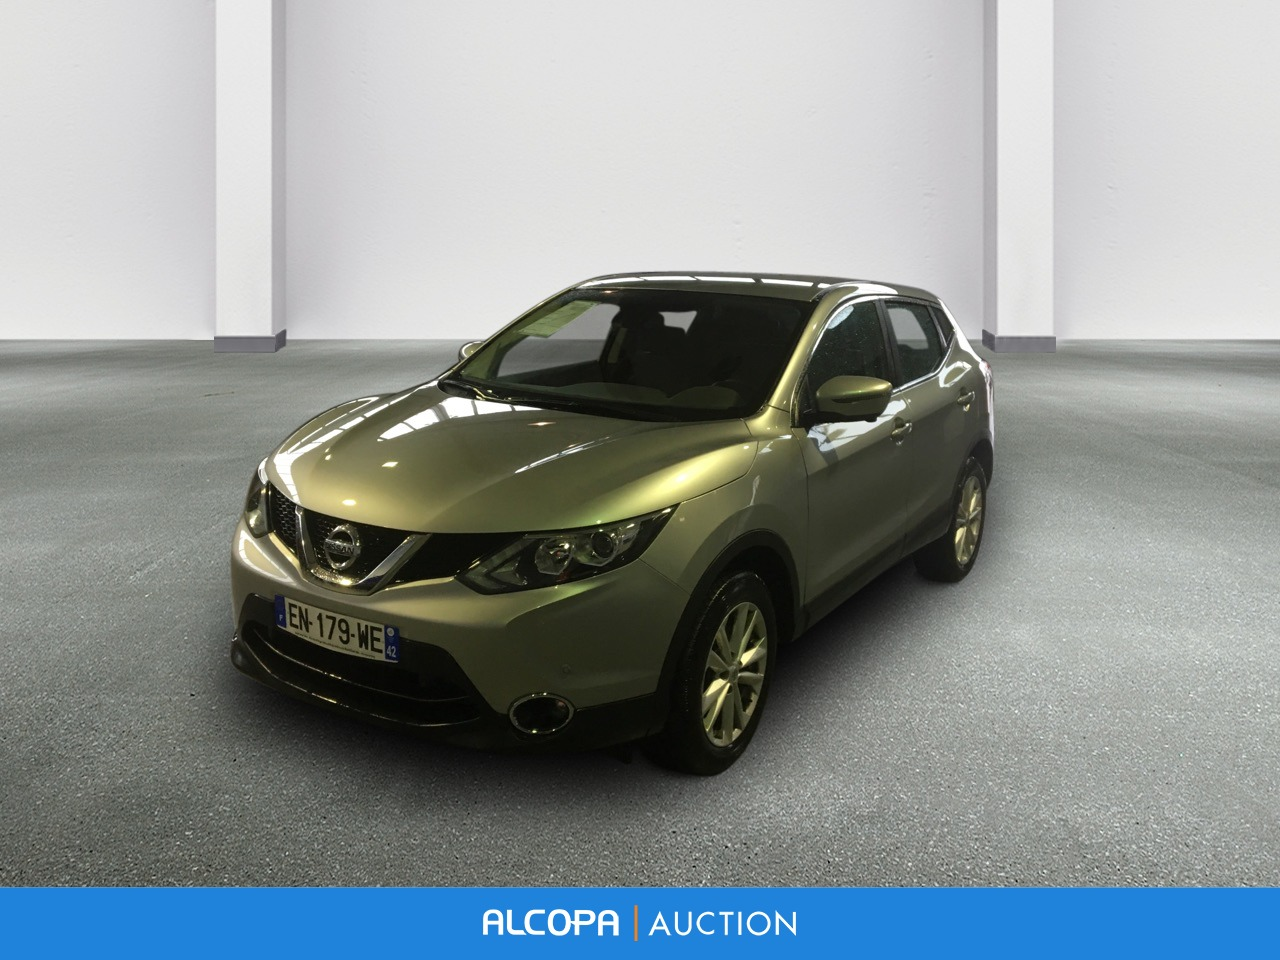 nissan qashqai nouveau qashqai 1 5 dci 110 business edition alcopa auction. Black Bedroom Furniture Sets. Home Design Ideas